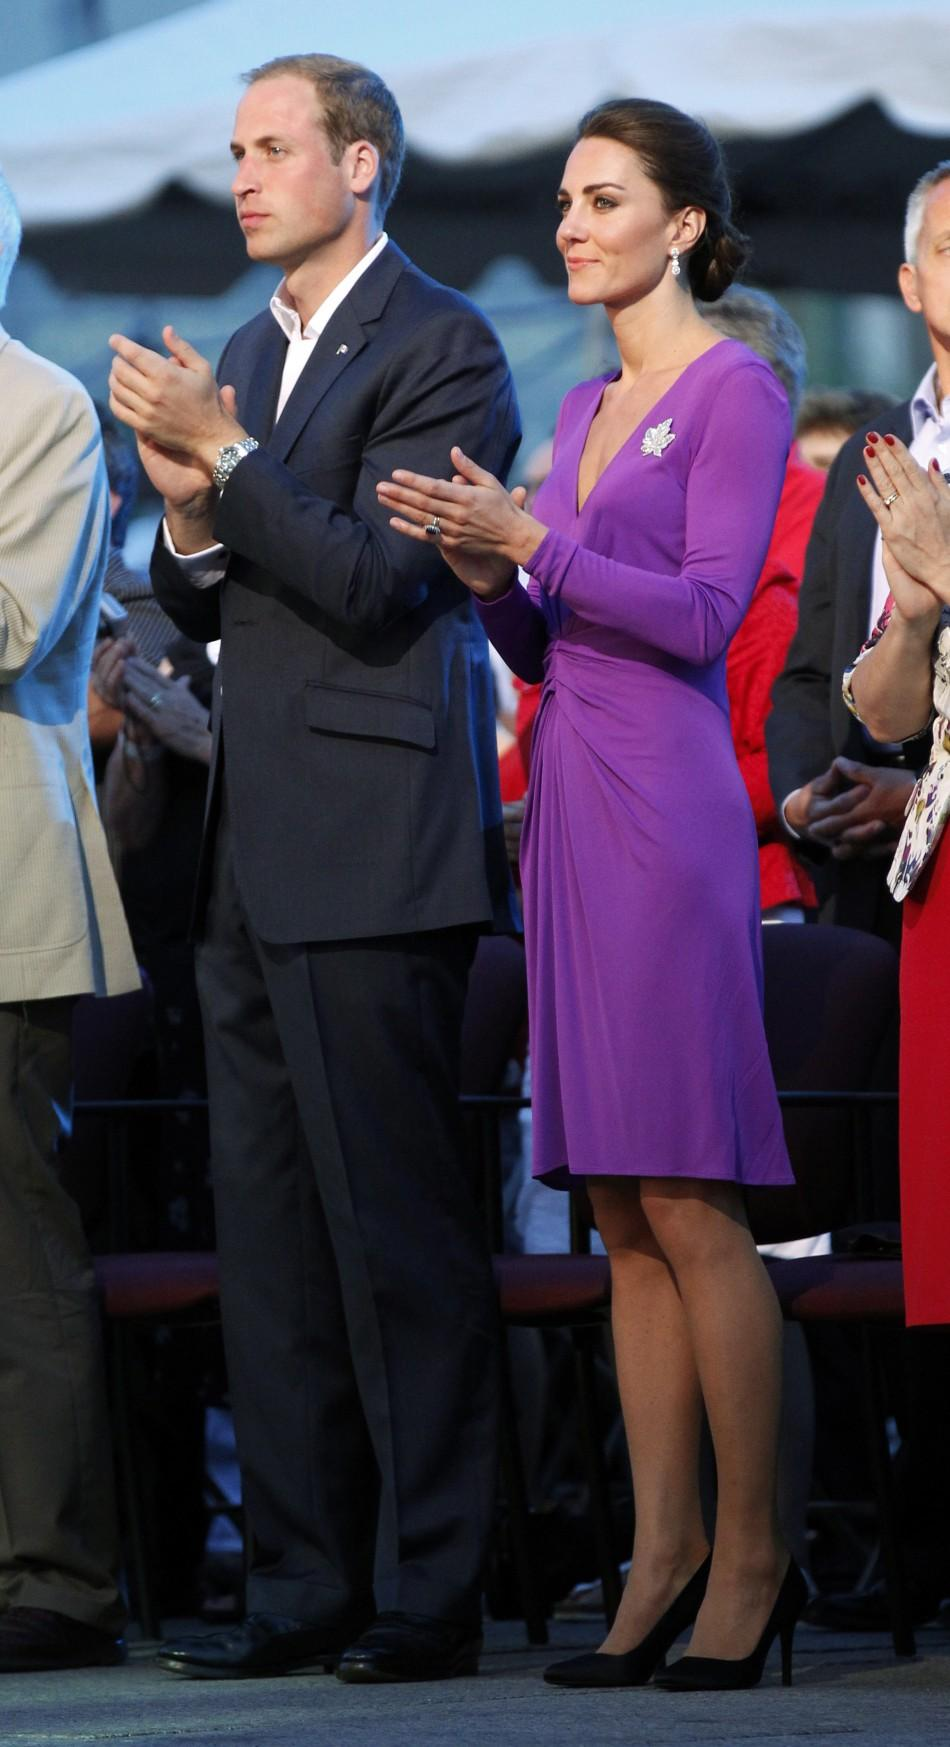 Kate Middleton turns chic in purple dress on Canada Day (PHOTOS) 6c38365d3